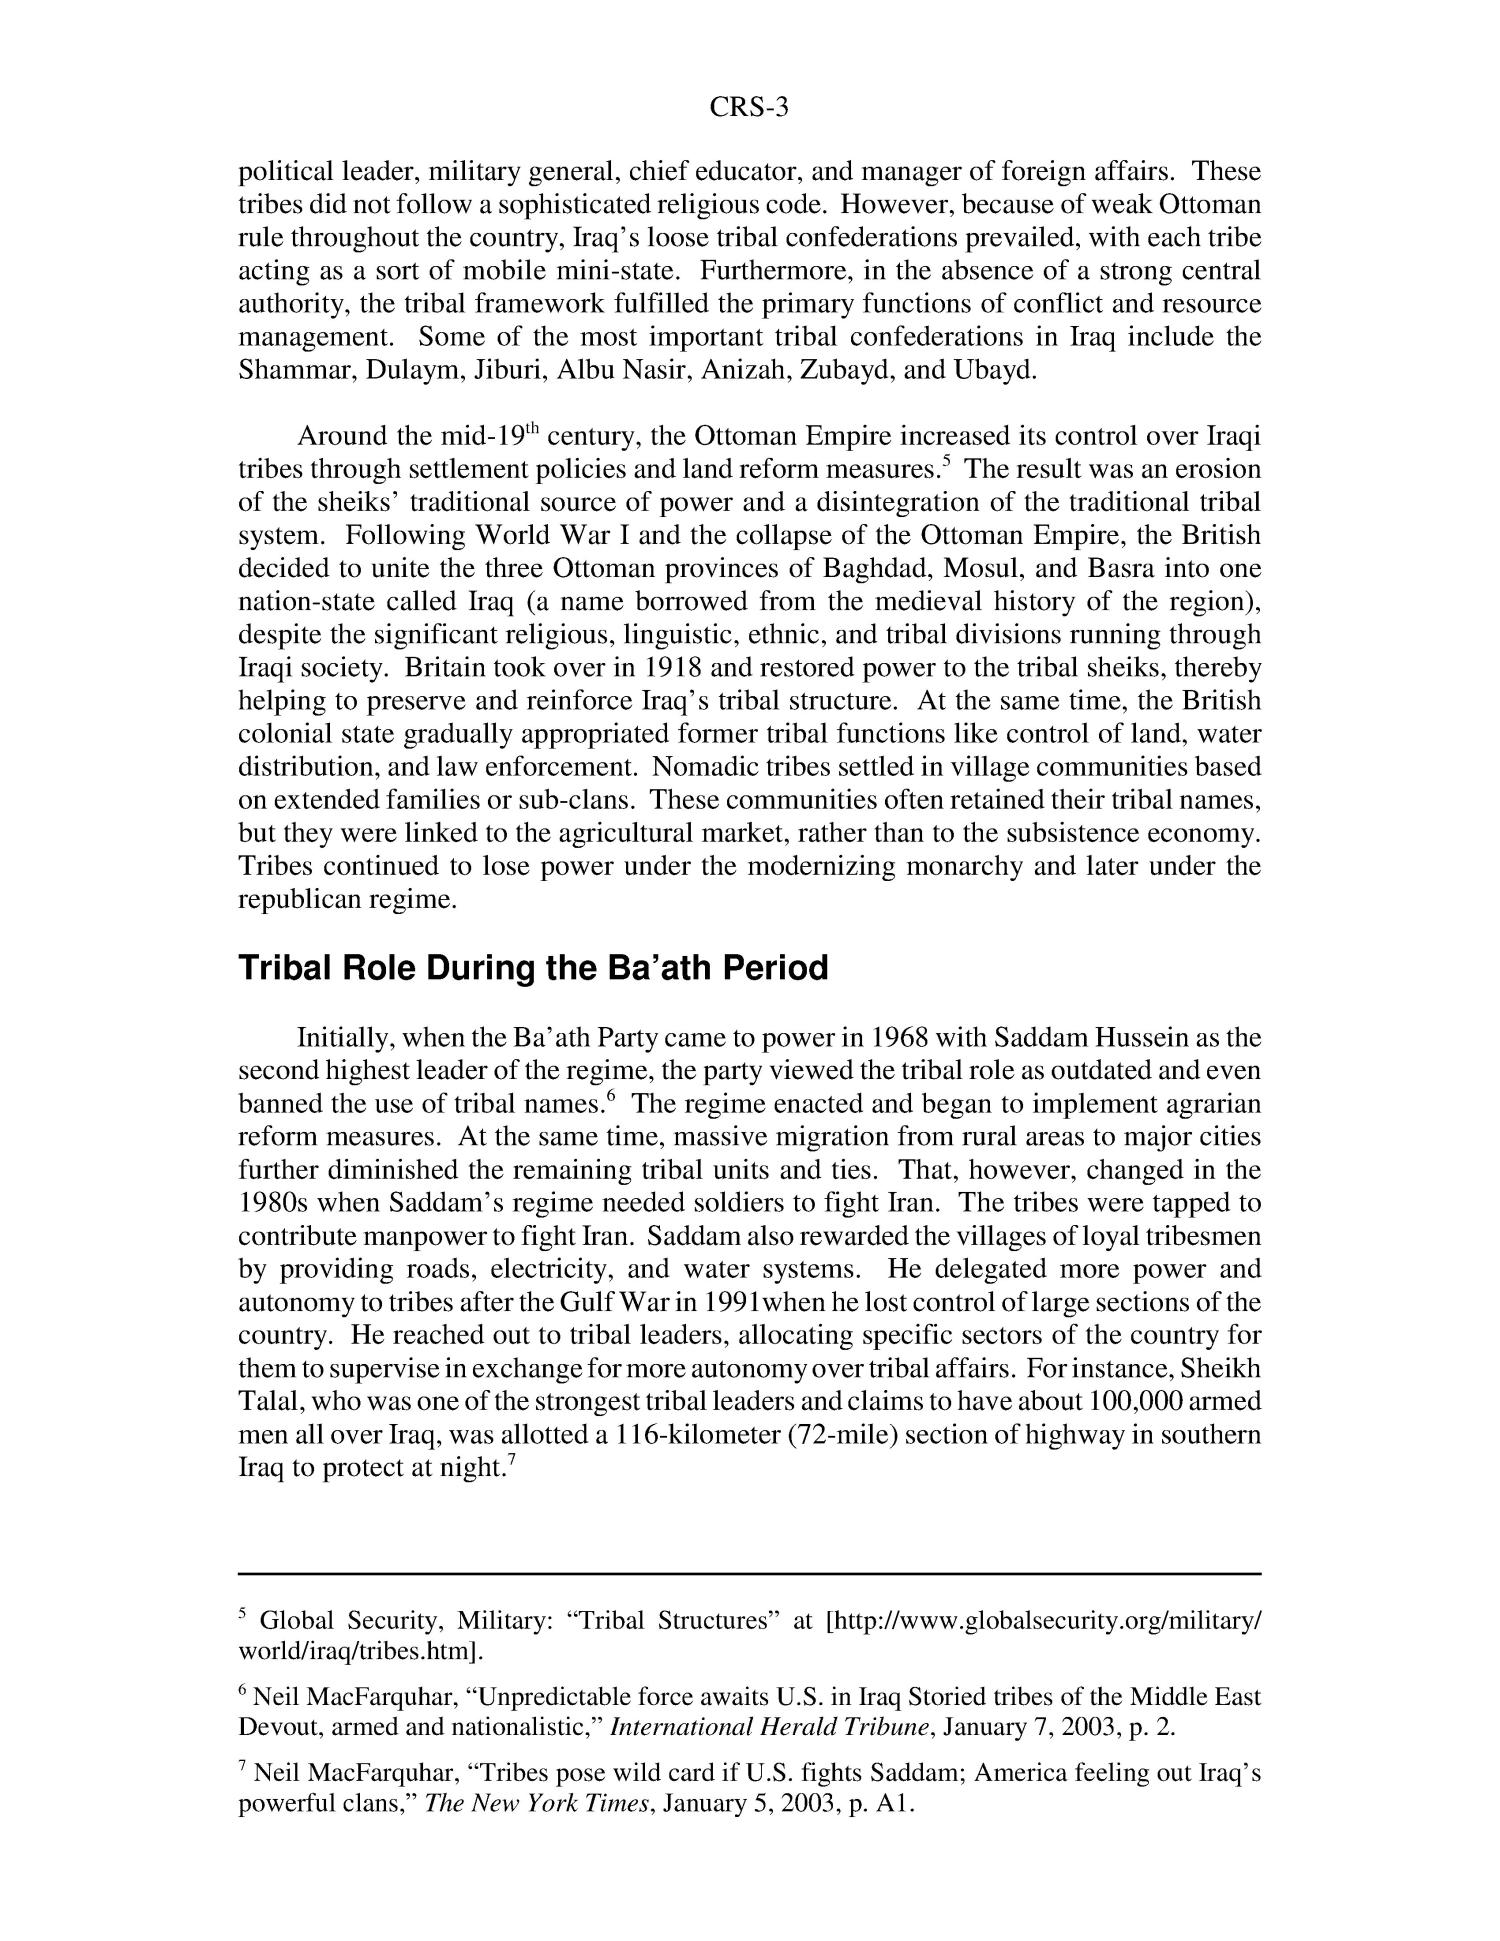 Iraq: Tribal Structure, Social, and Political Activities                                                                                                      [Sequence #]: 3 of 6